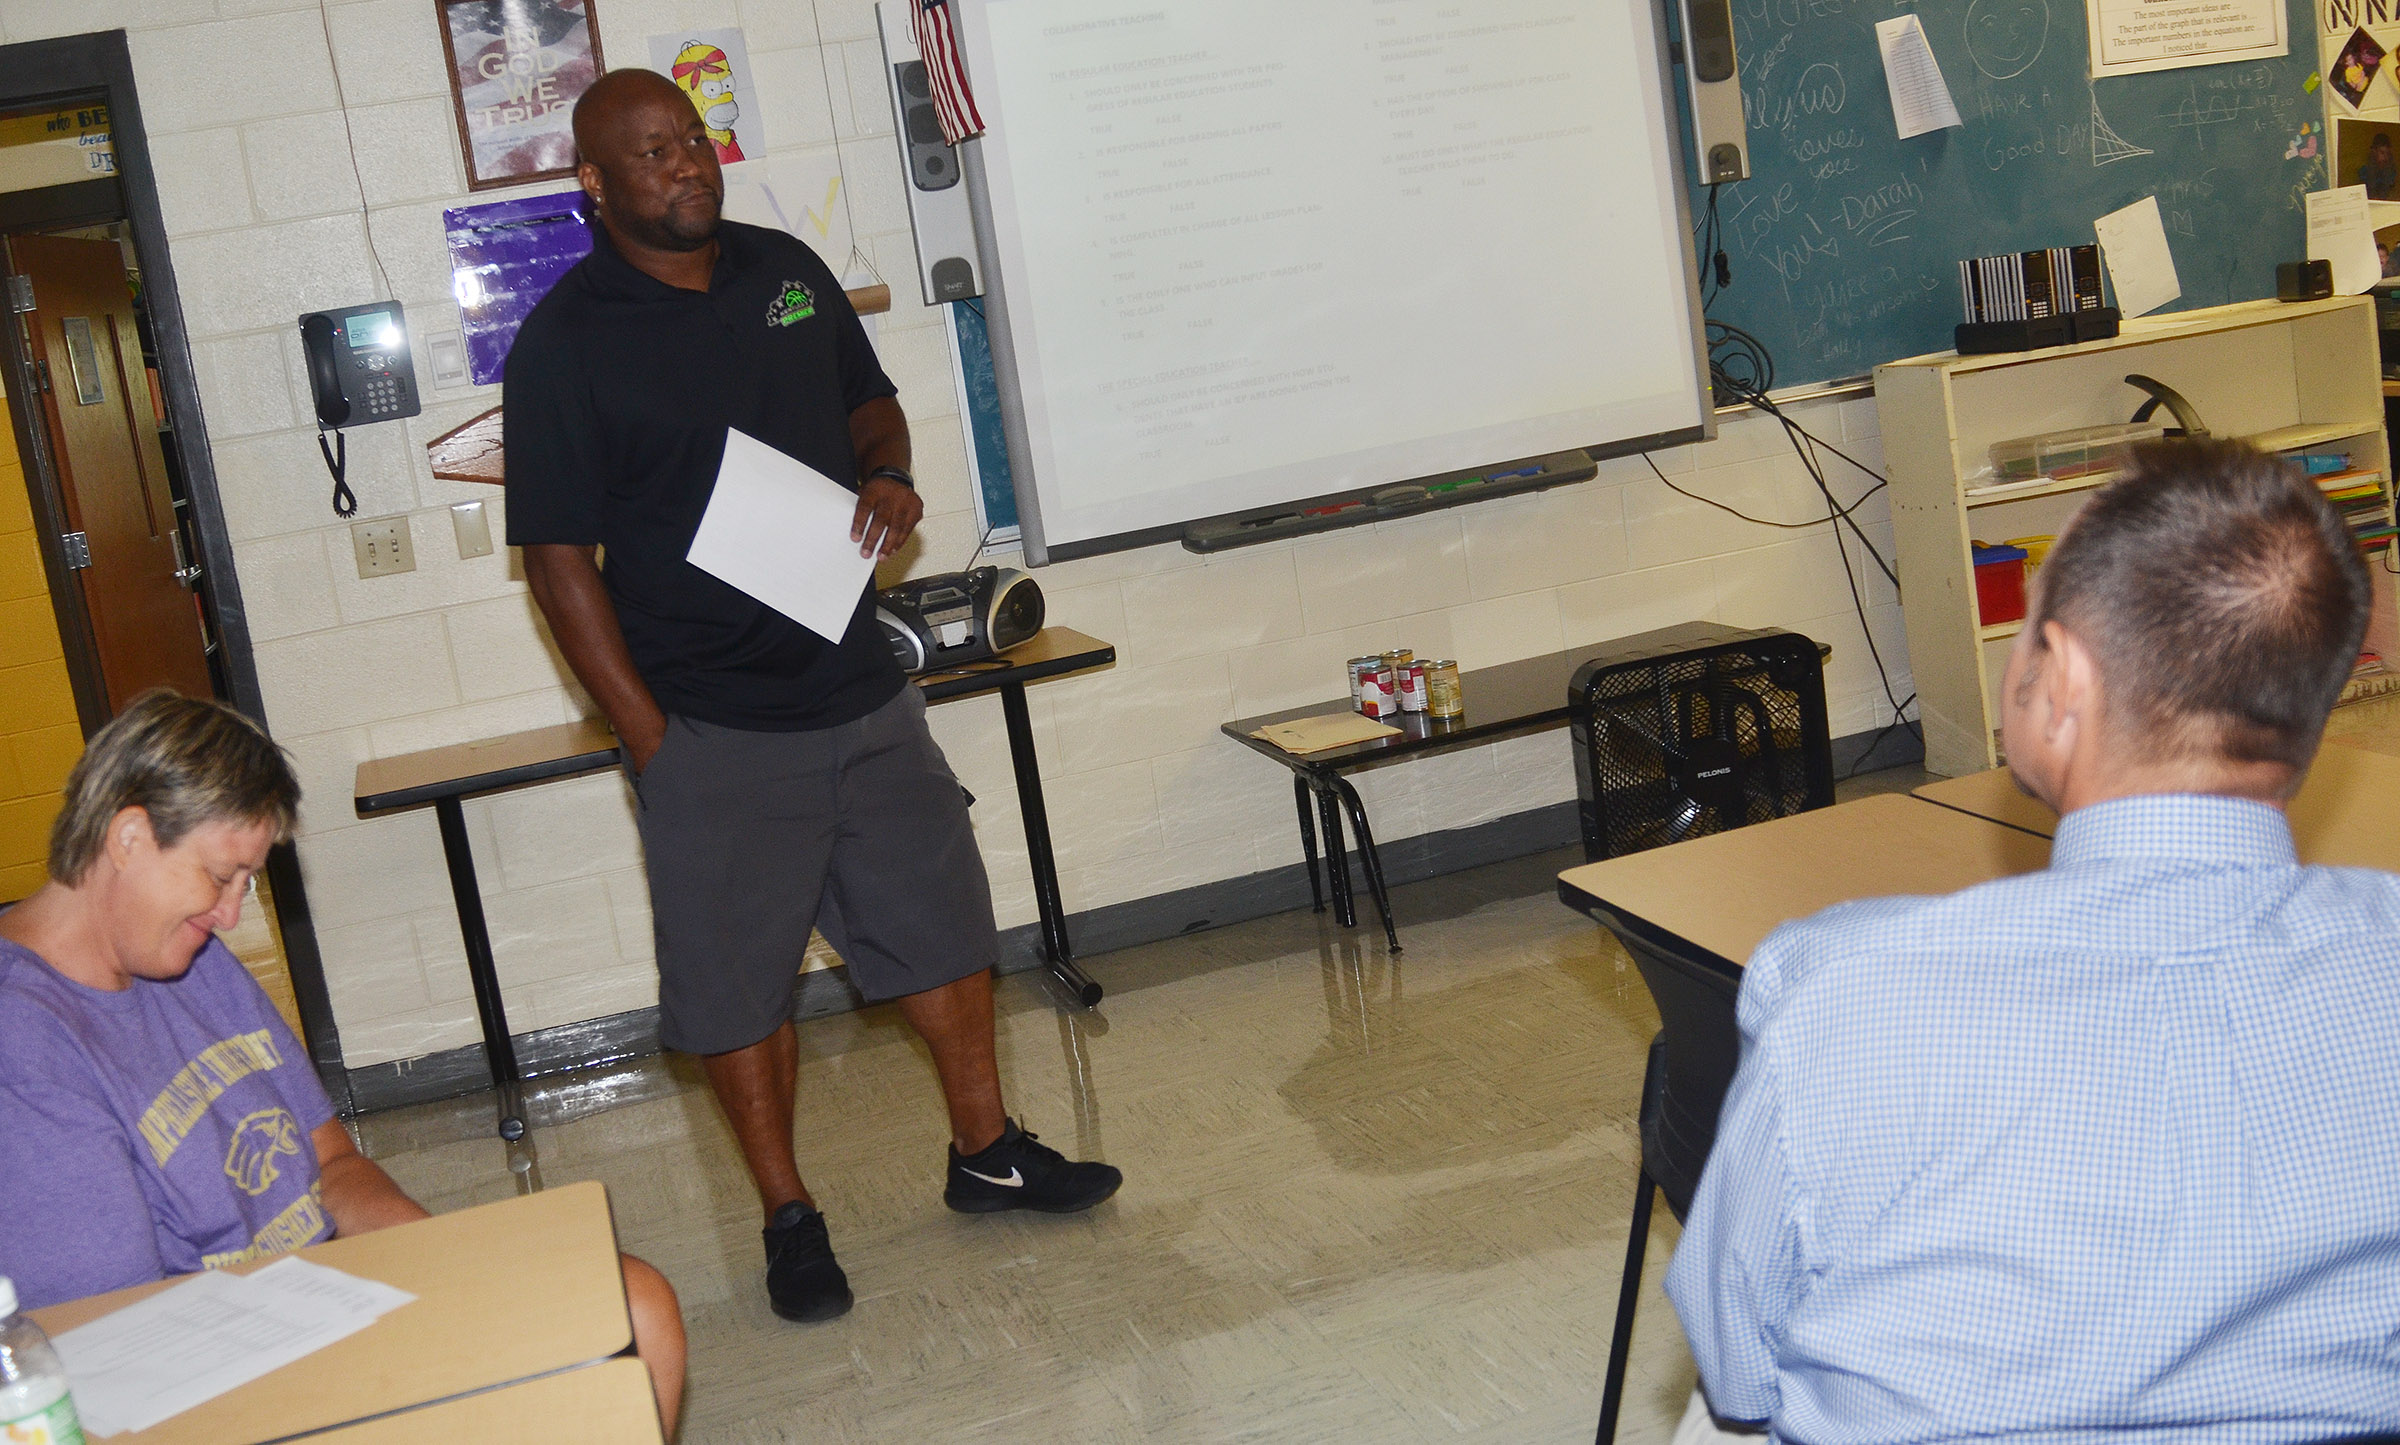 CHS exceptional child educator Anthony Epps teaches a session about collaborative teaching and building student relationships.